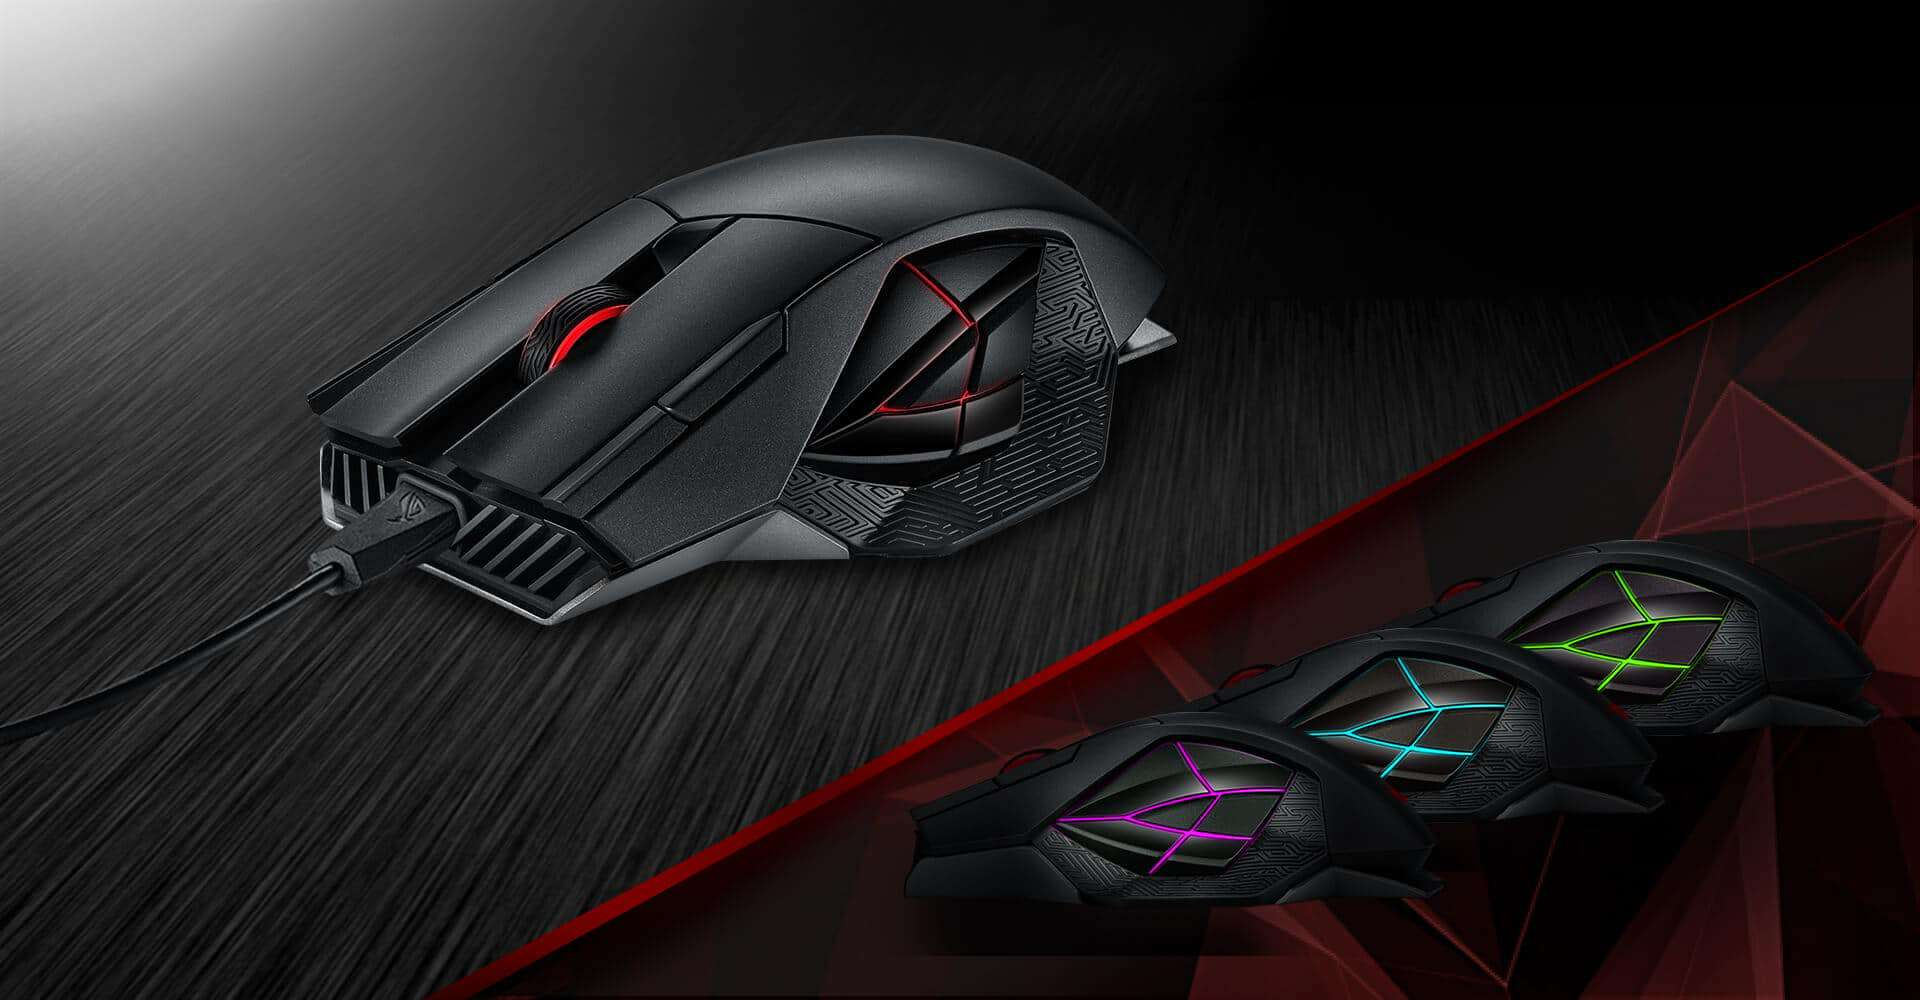 Best MMO Gaming Mouse